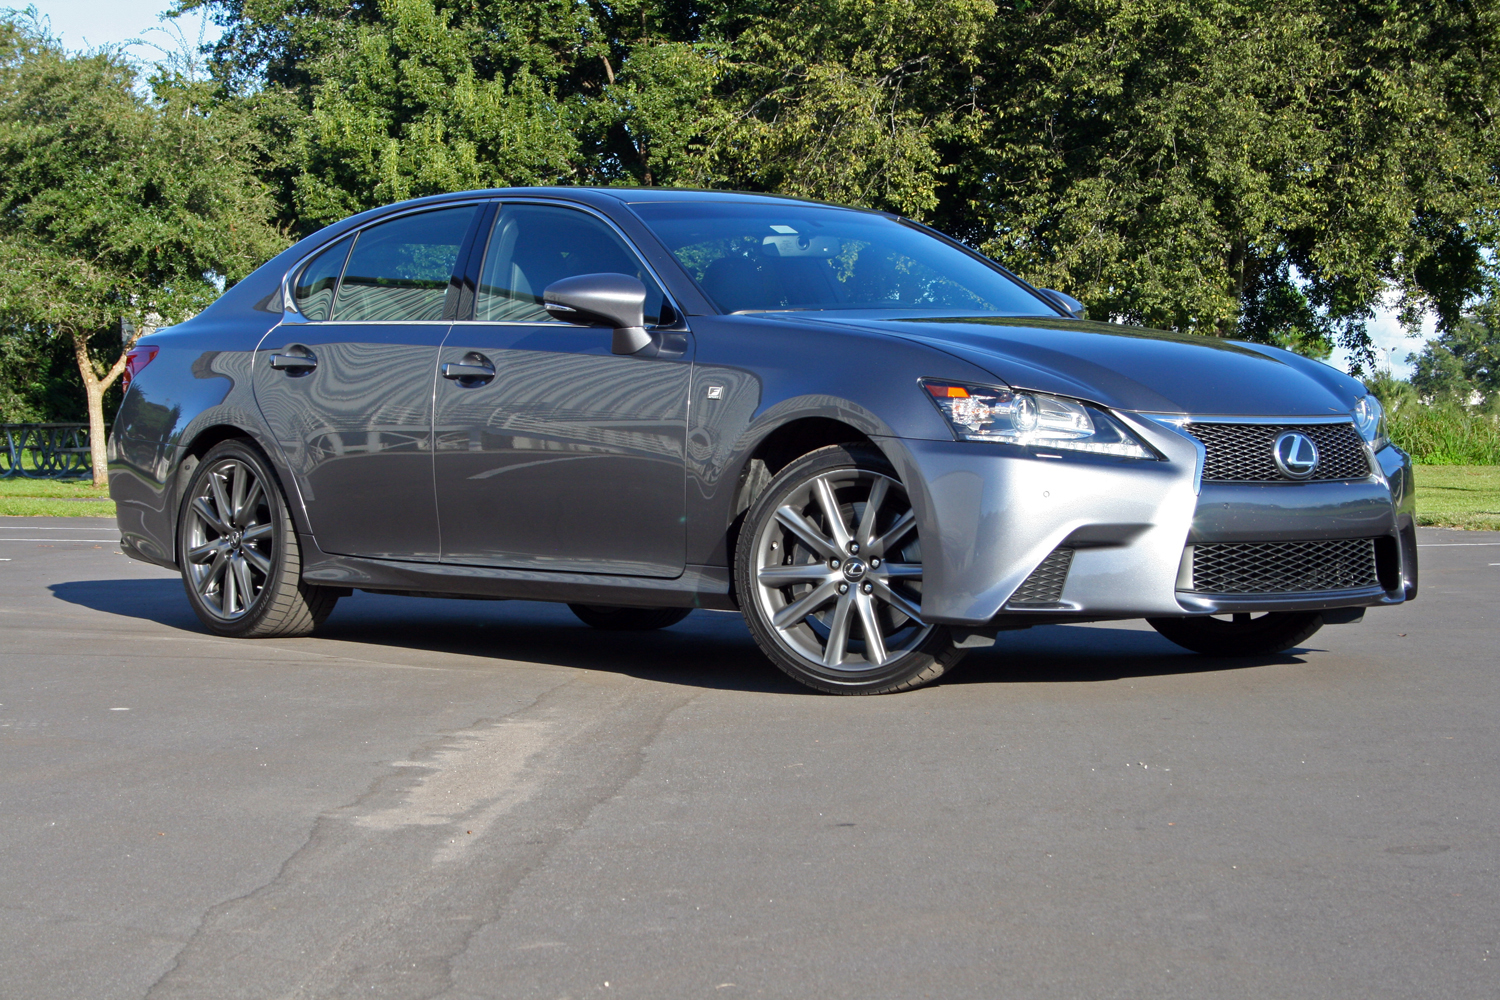 Beautiful 2014 Lexus GS 350 F Sport   Driven | Top Speed. »